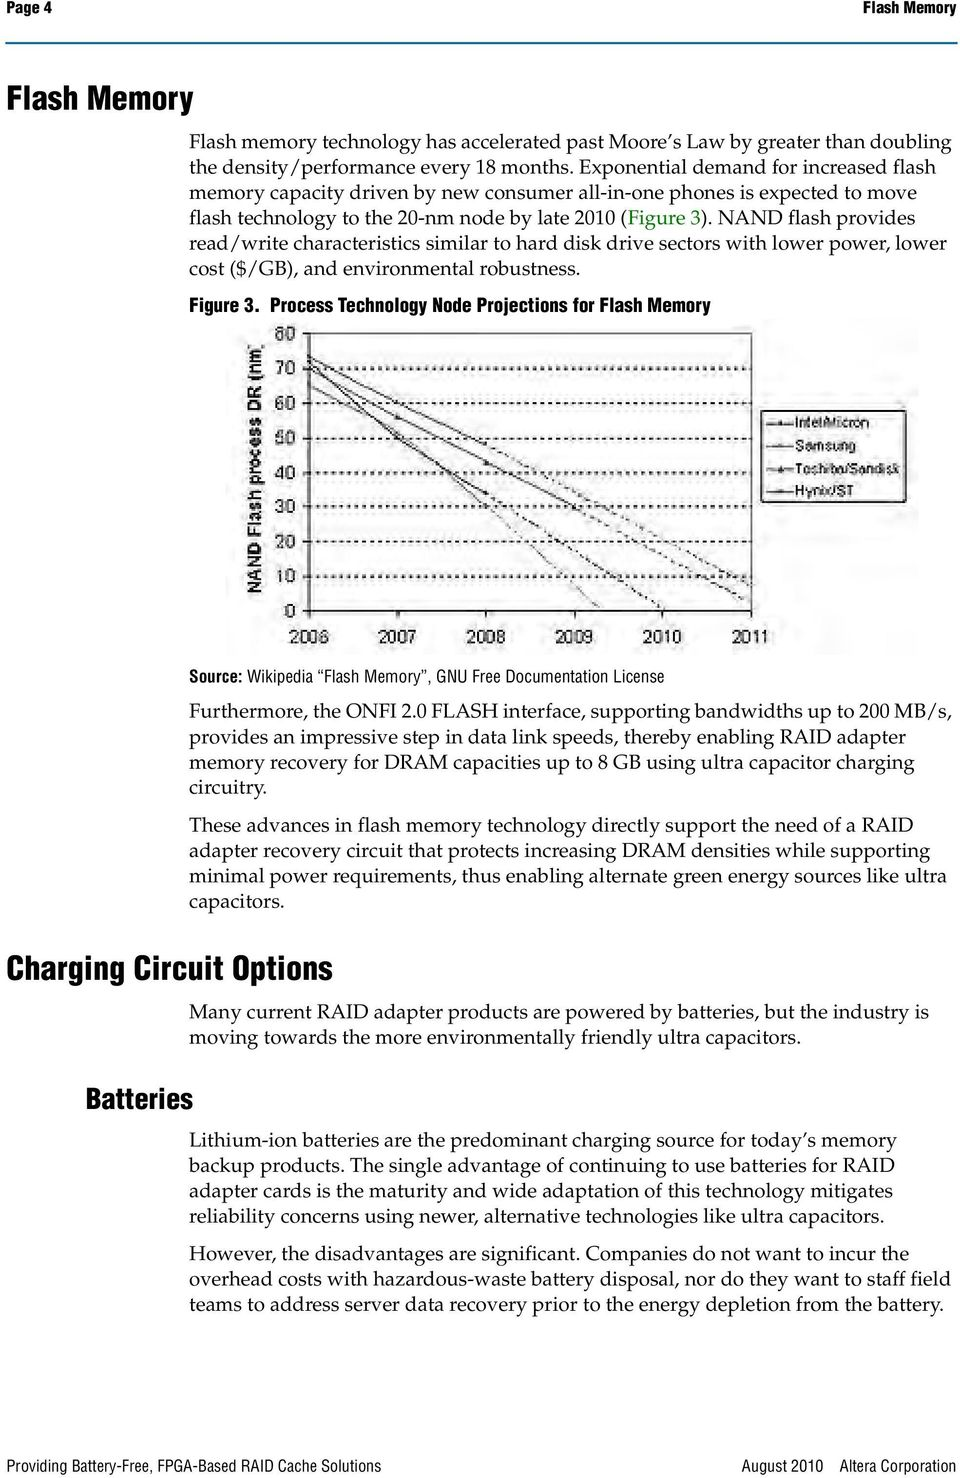 NAND flash provides read/write characteristics similar to hard disk drive sectors with lower power, lower cost ($/GB), and environmental robustness. Figure 3.